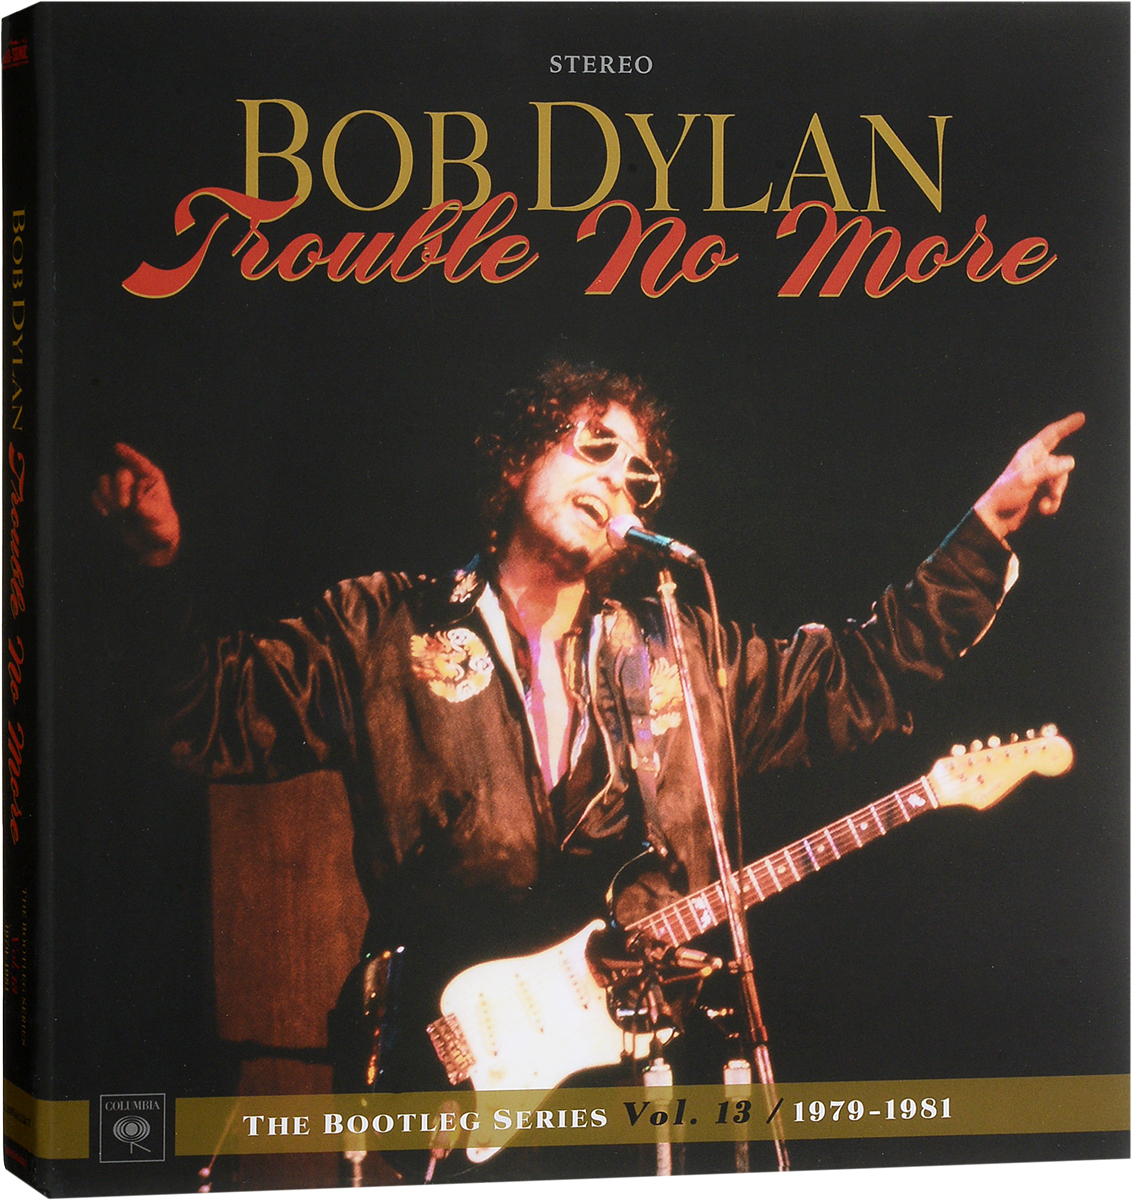 Боб Дилан Bob Dylan. Trouble No More: The Bootleg Series Vol. 13 / 1979-1981 (4 LP + 2 CD) боб дилан bob dylan and the band bob dylan the complete album collection vol 1 47 cd